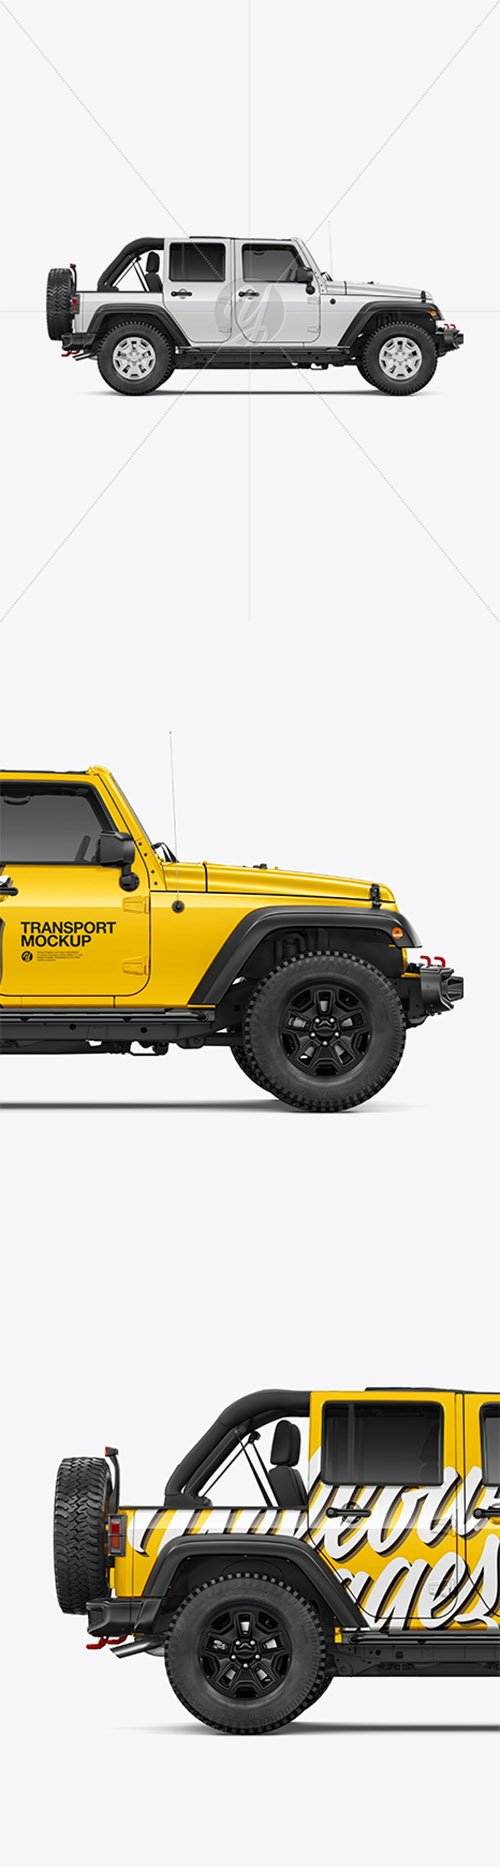 Off-Road SUV with Open Roof Mockup - Side View 39964 TIF